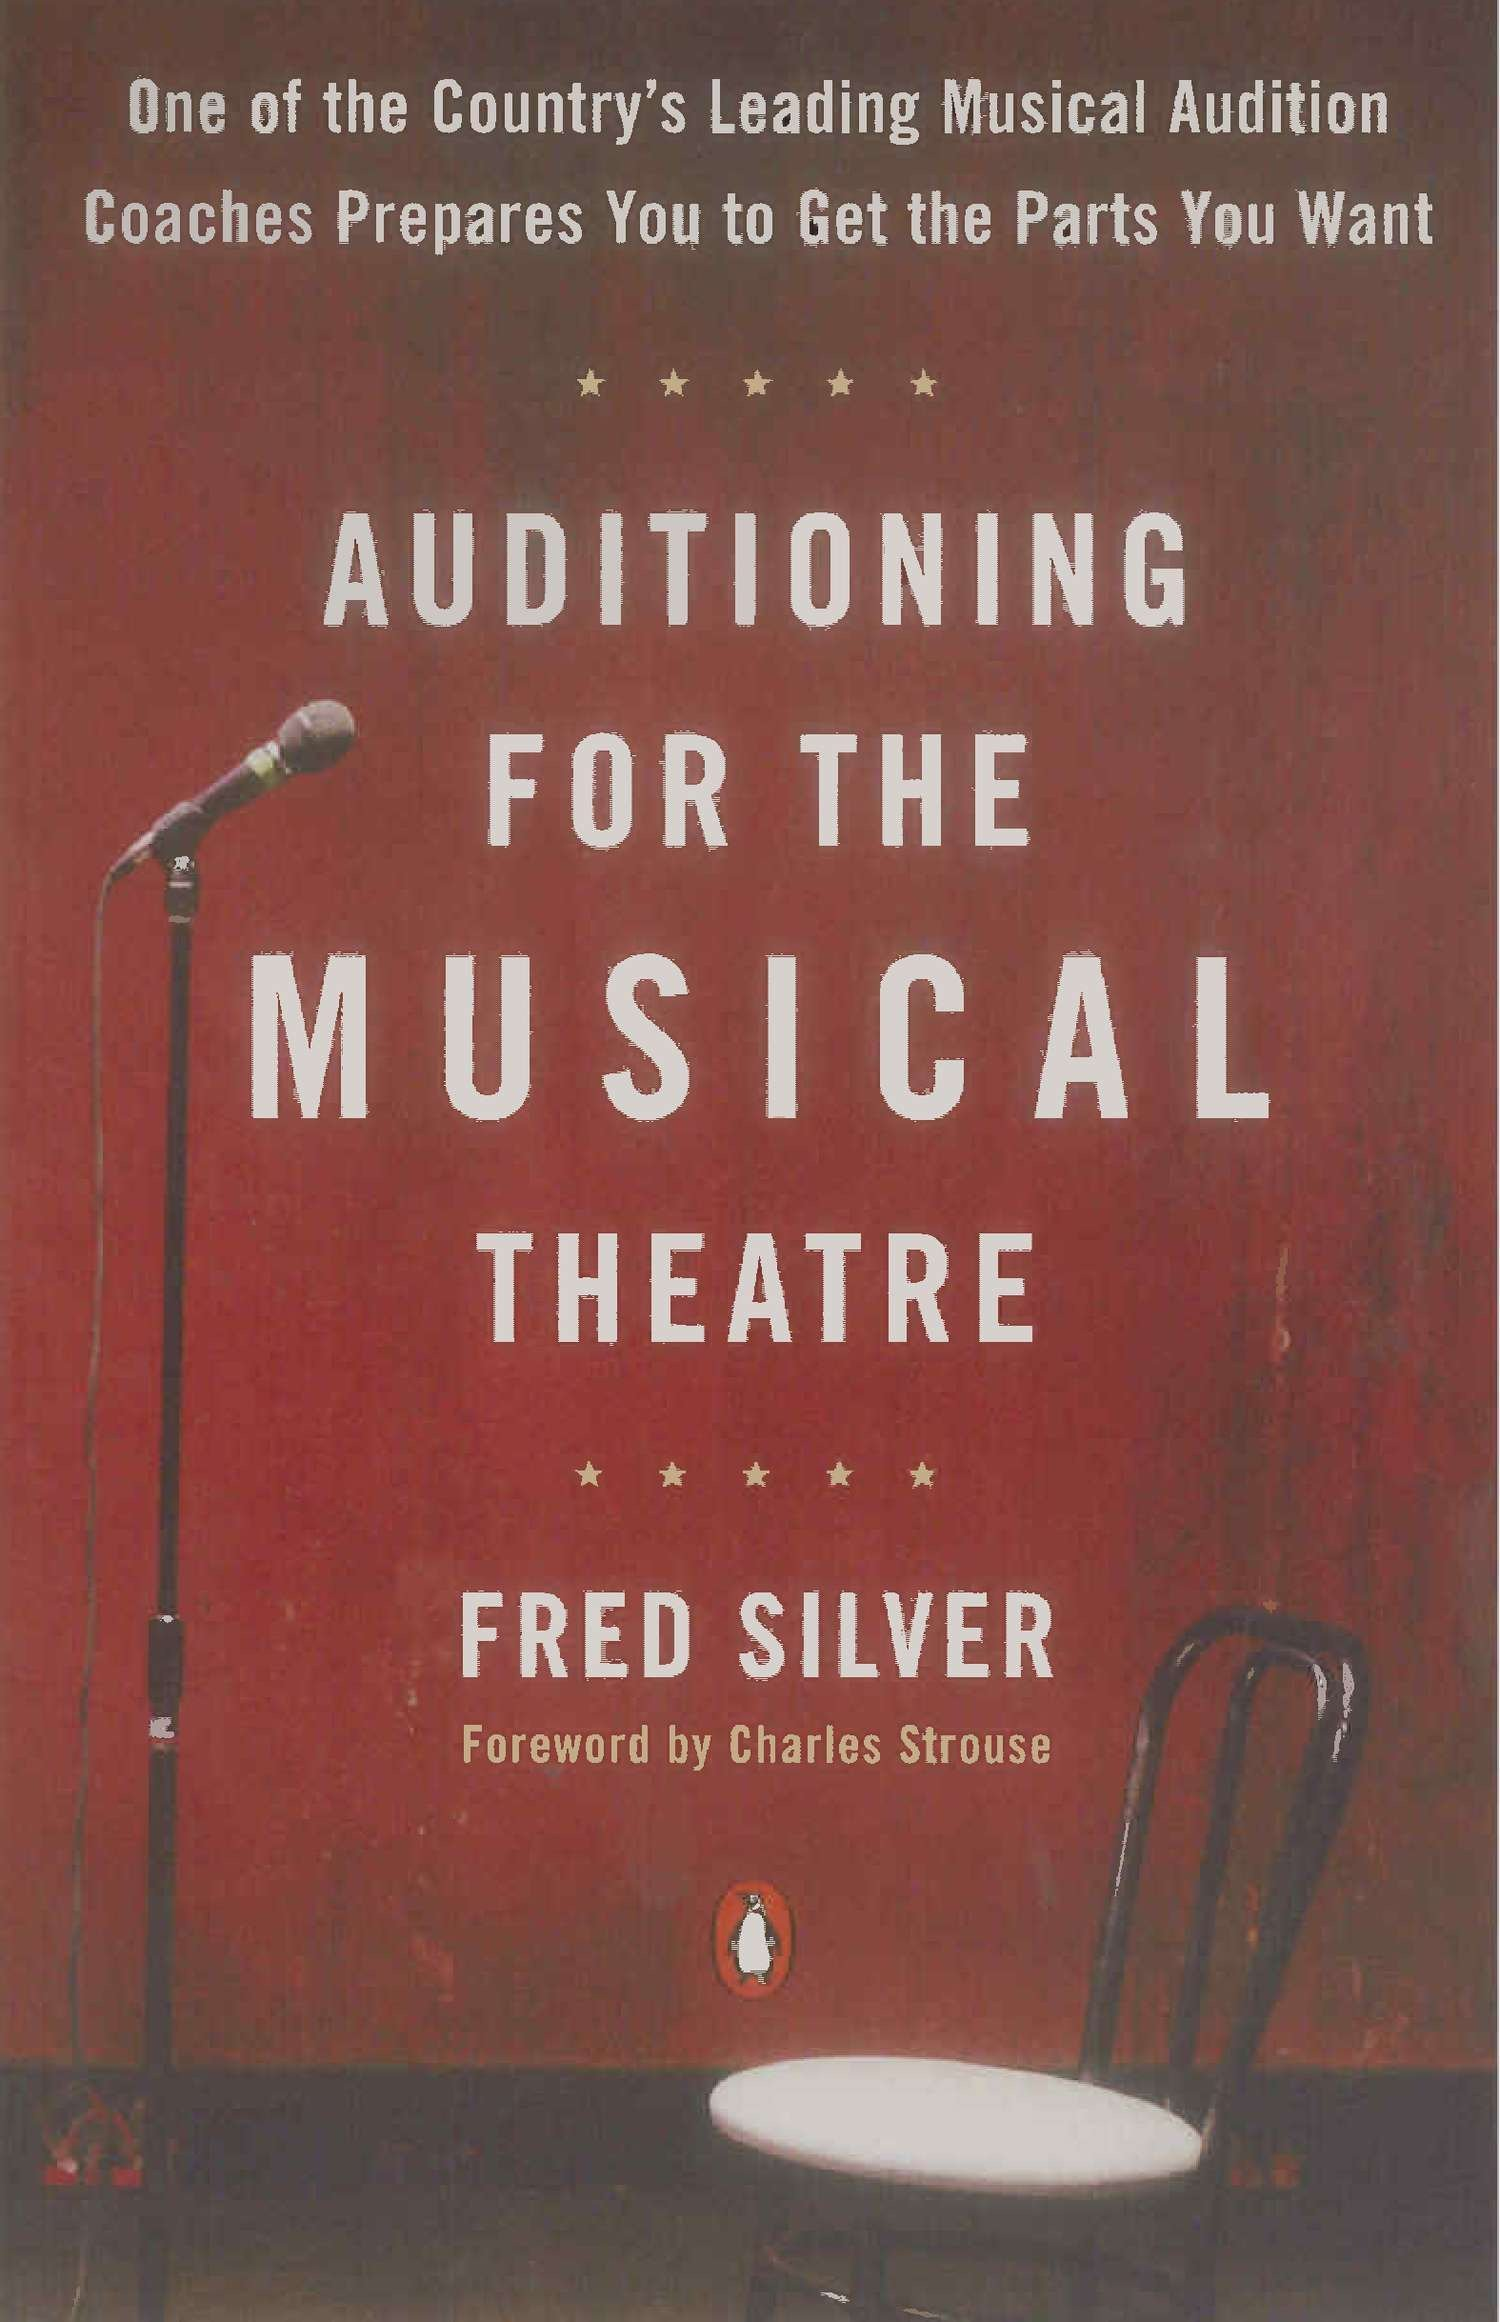 Twenty Top Audition Tips for Audio Theater Stars